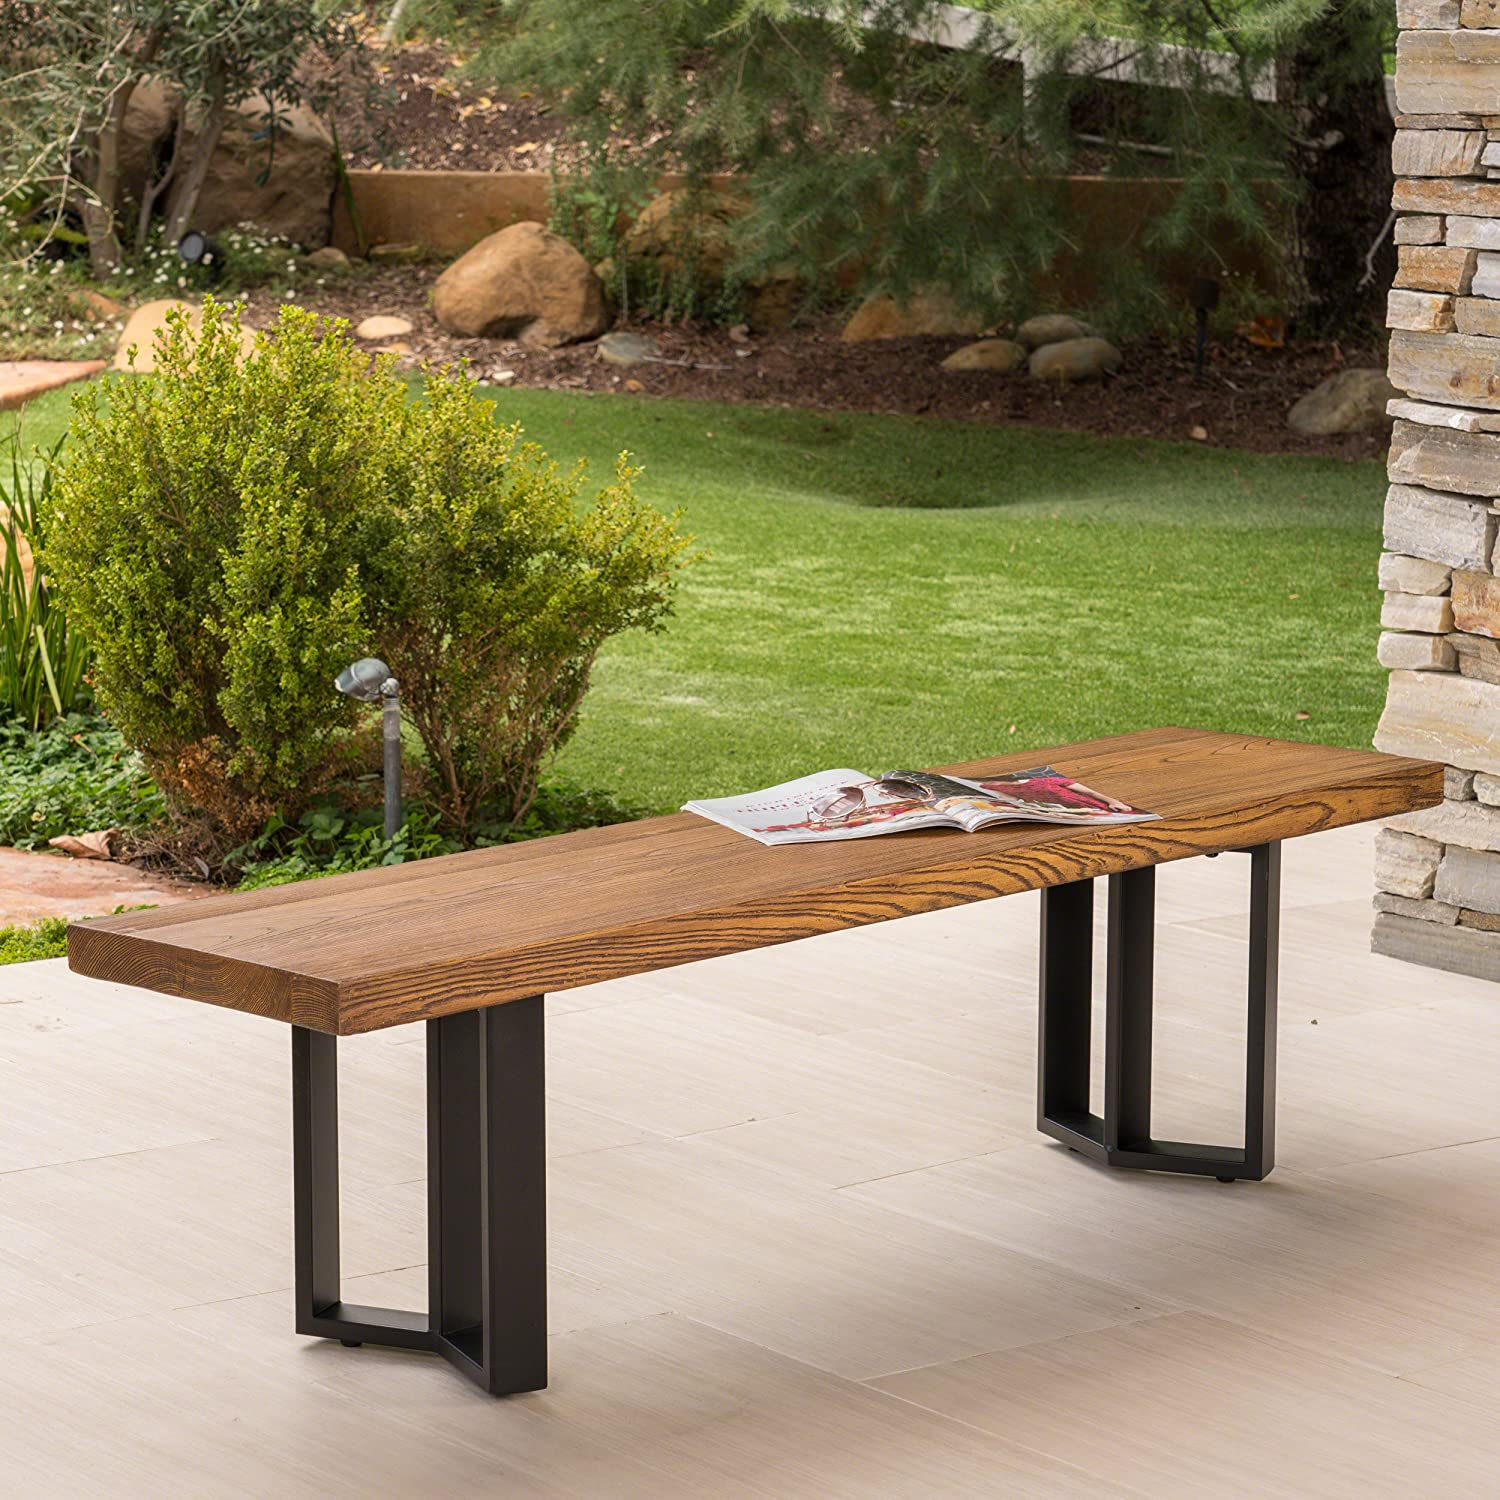 Christopher Knight Home 304103 Andre Outdoor Textured Brown Finish Light Weight Concrete Dining Bench, Black